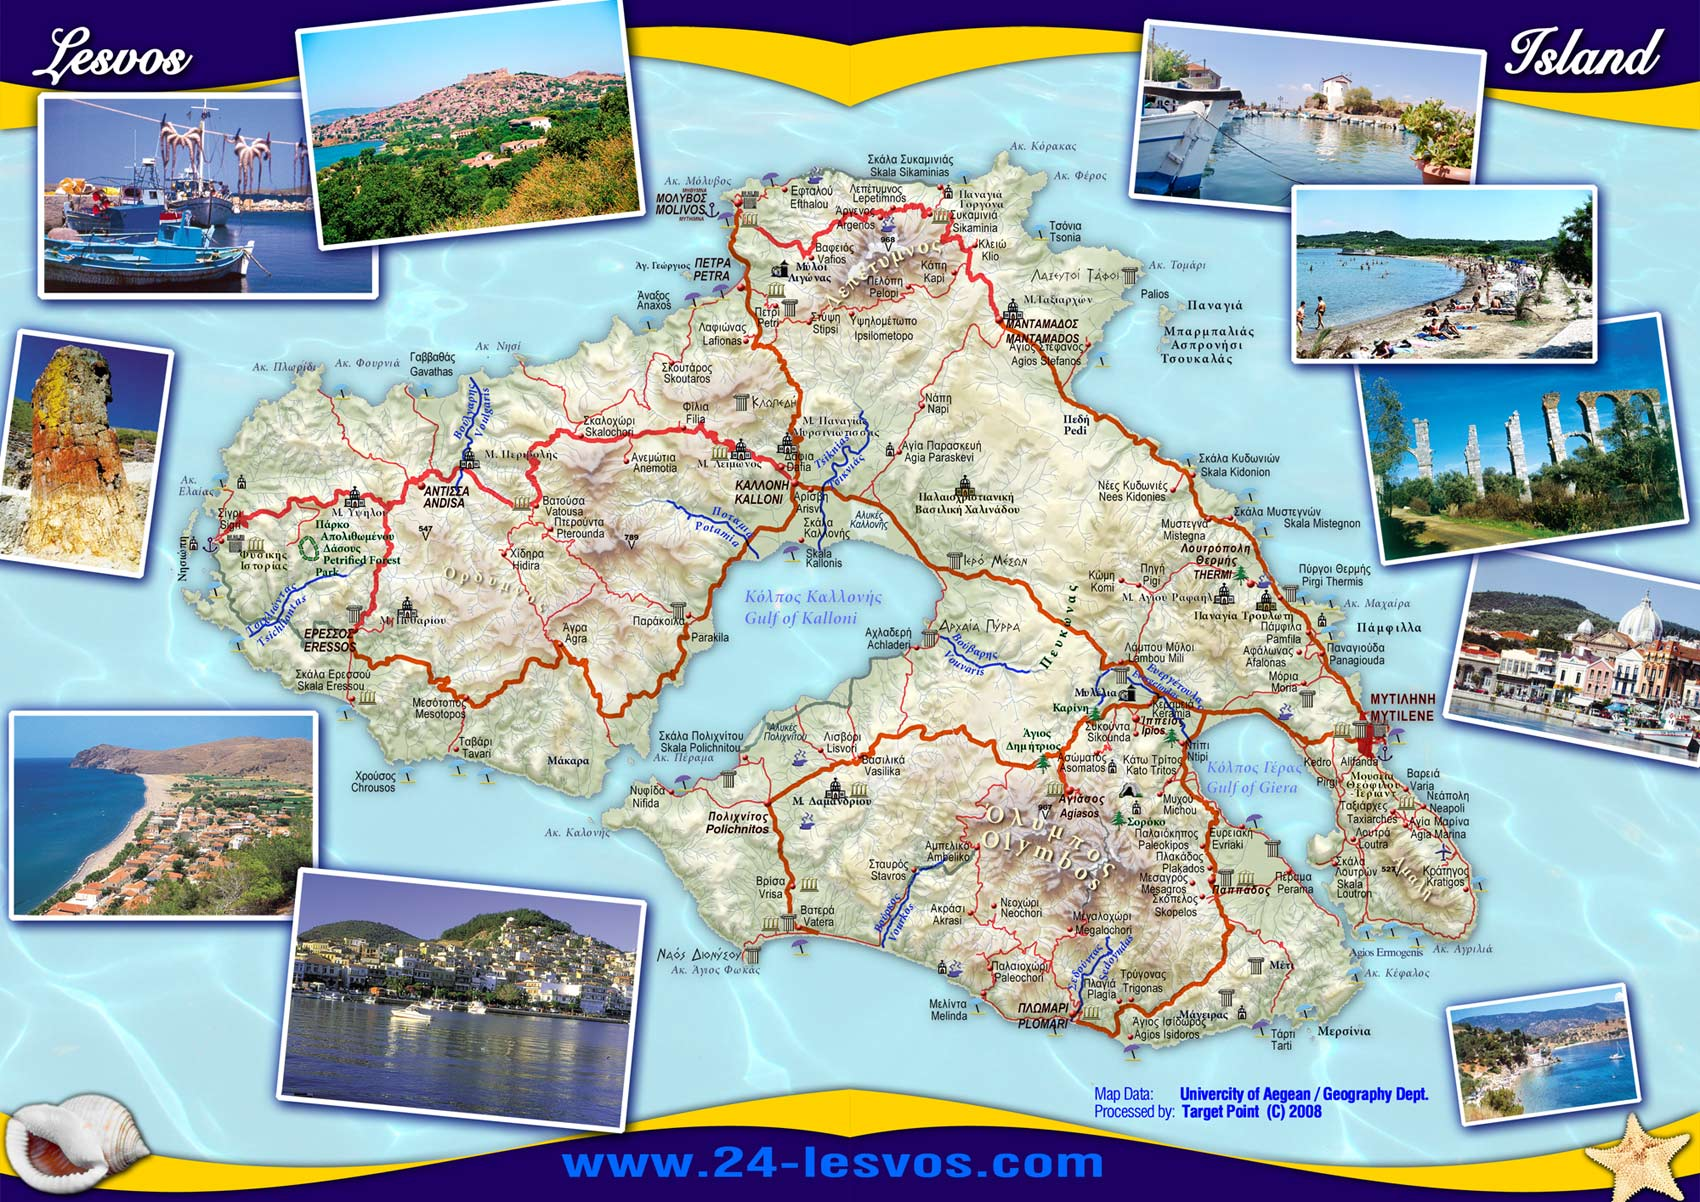 Lesvos Lesbos Tourist Map Lesvos Greece mappery – Greece Tourist Attractions Map